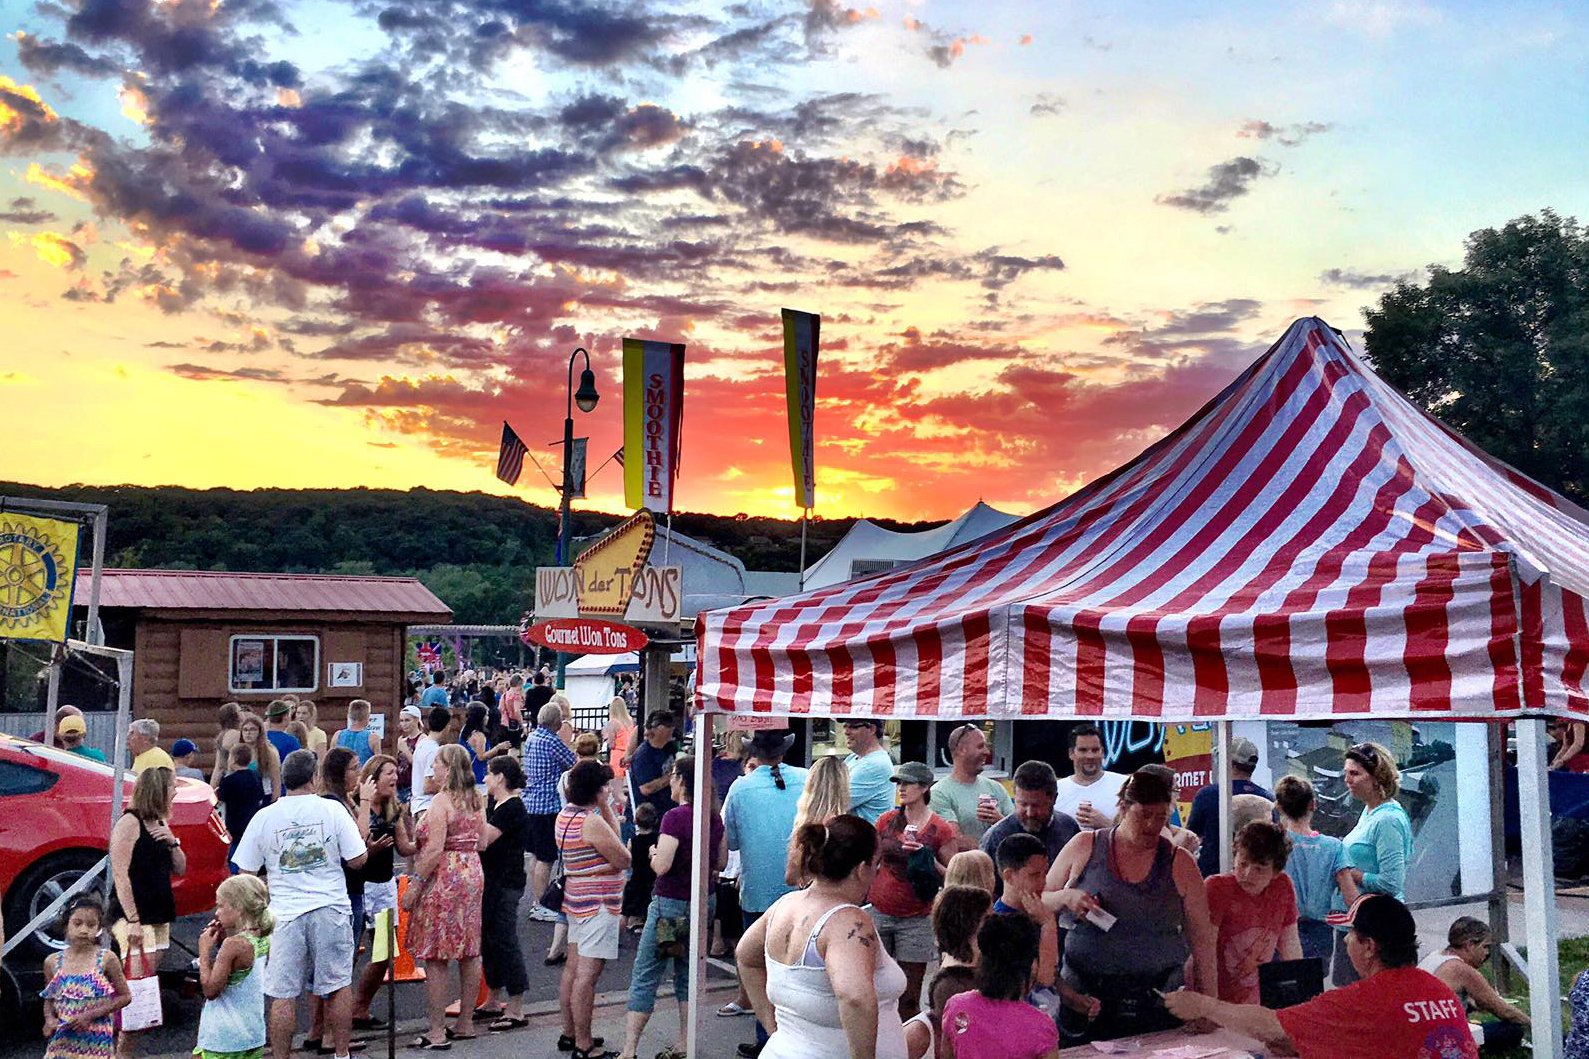 Wannigan Days, Fun and Food on the St Croix River